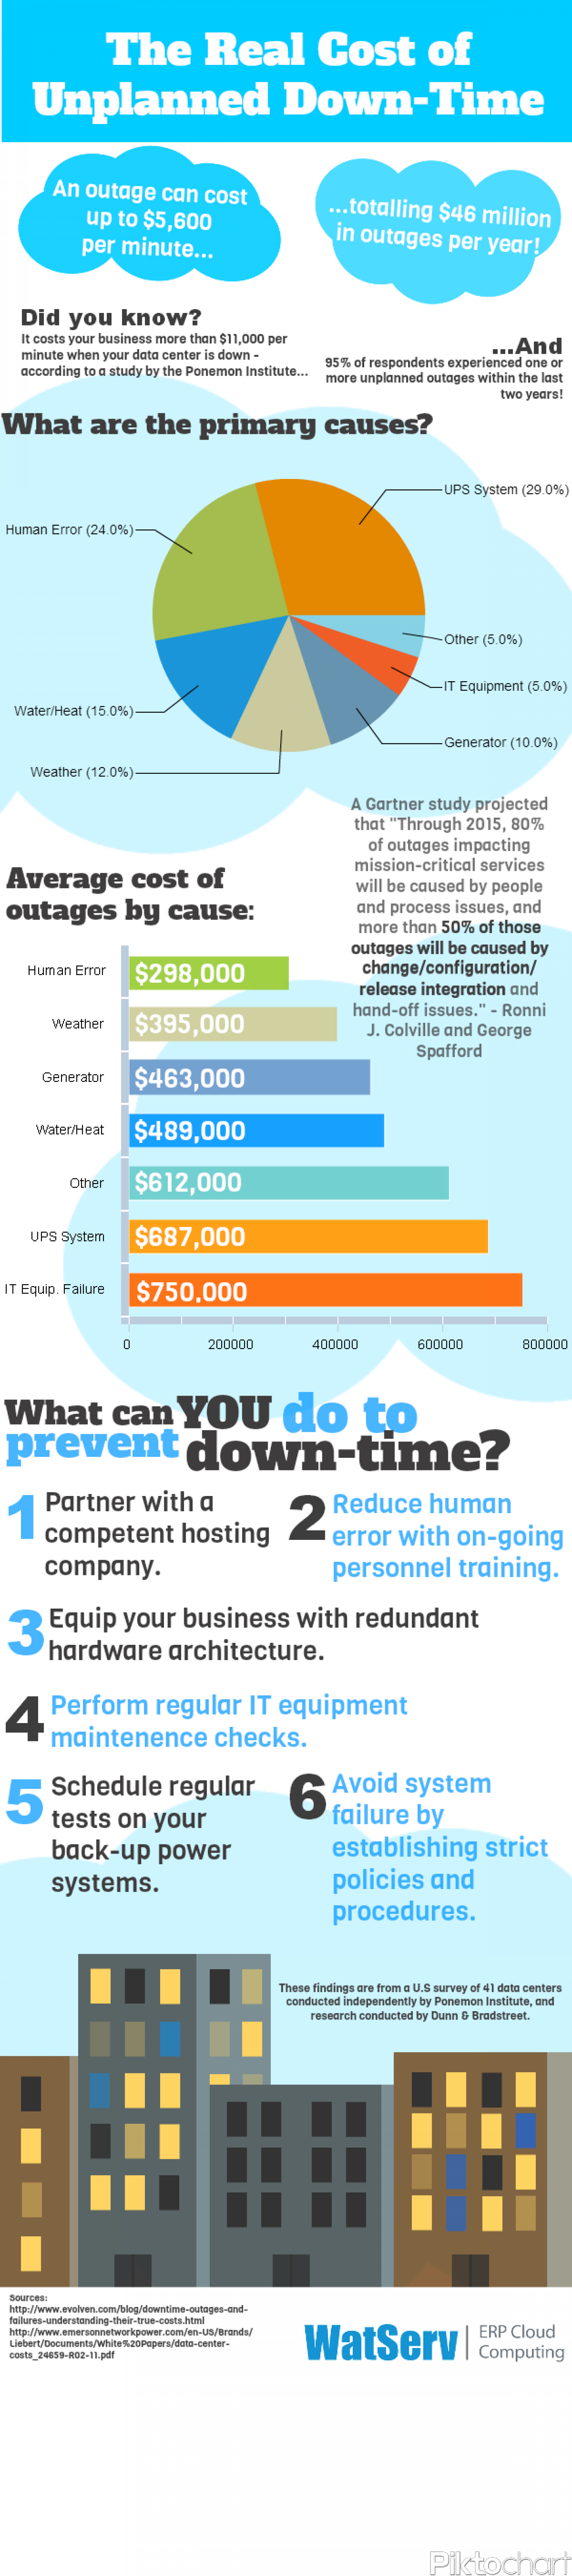 The Real Cost of Unplanned Down-Time Infographic